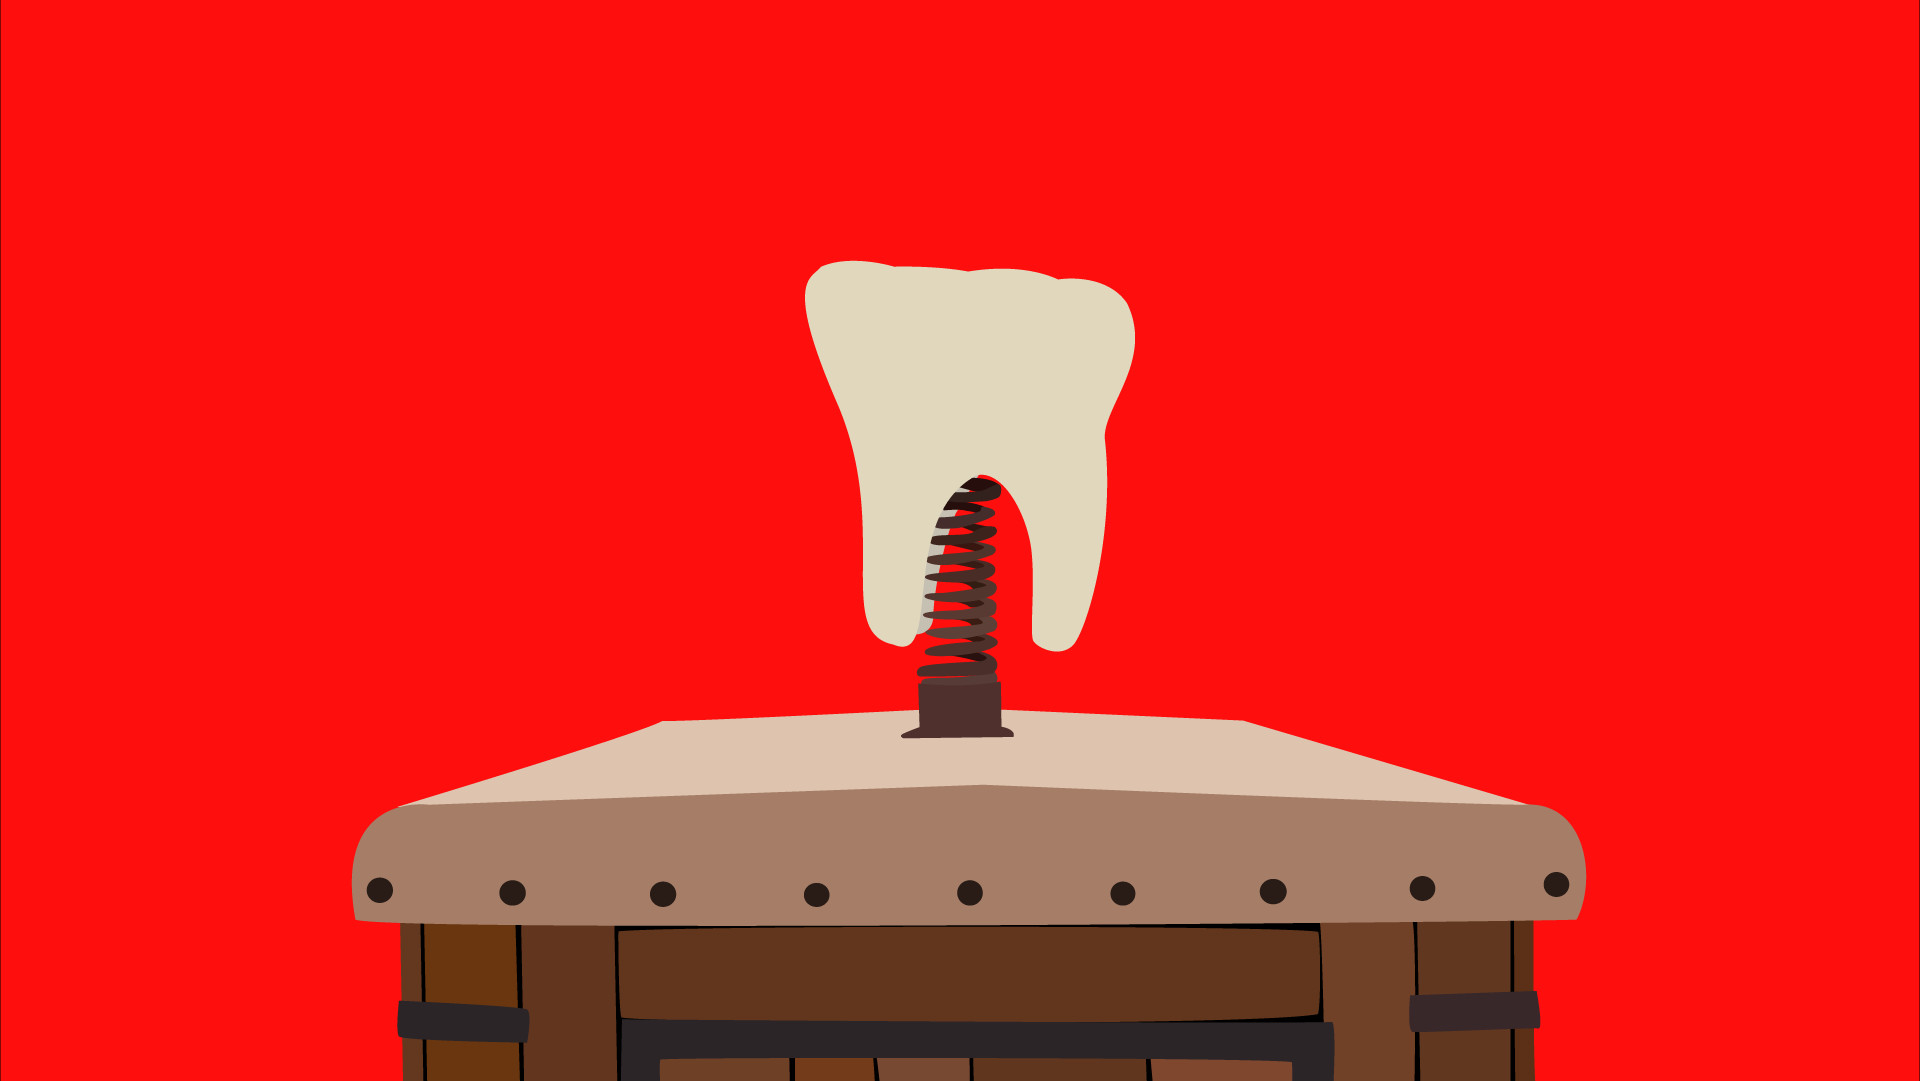 Res: 1920x1081, 12/07/2014: Tooth,  px